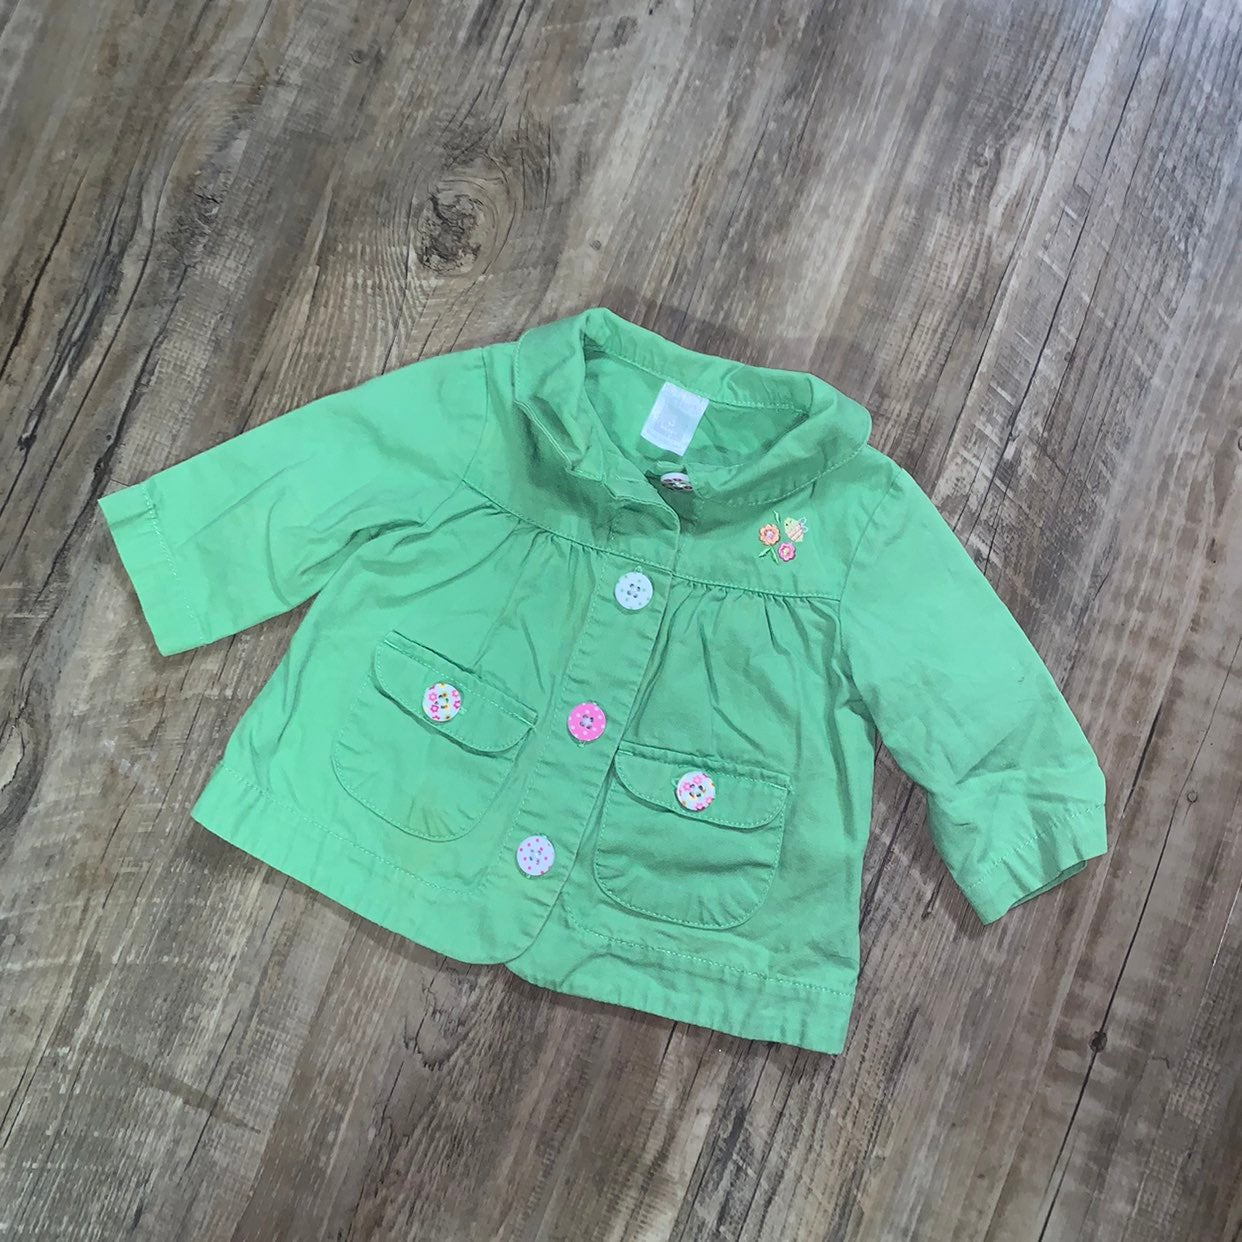 Carters Green Spring Jacket - 3 Months